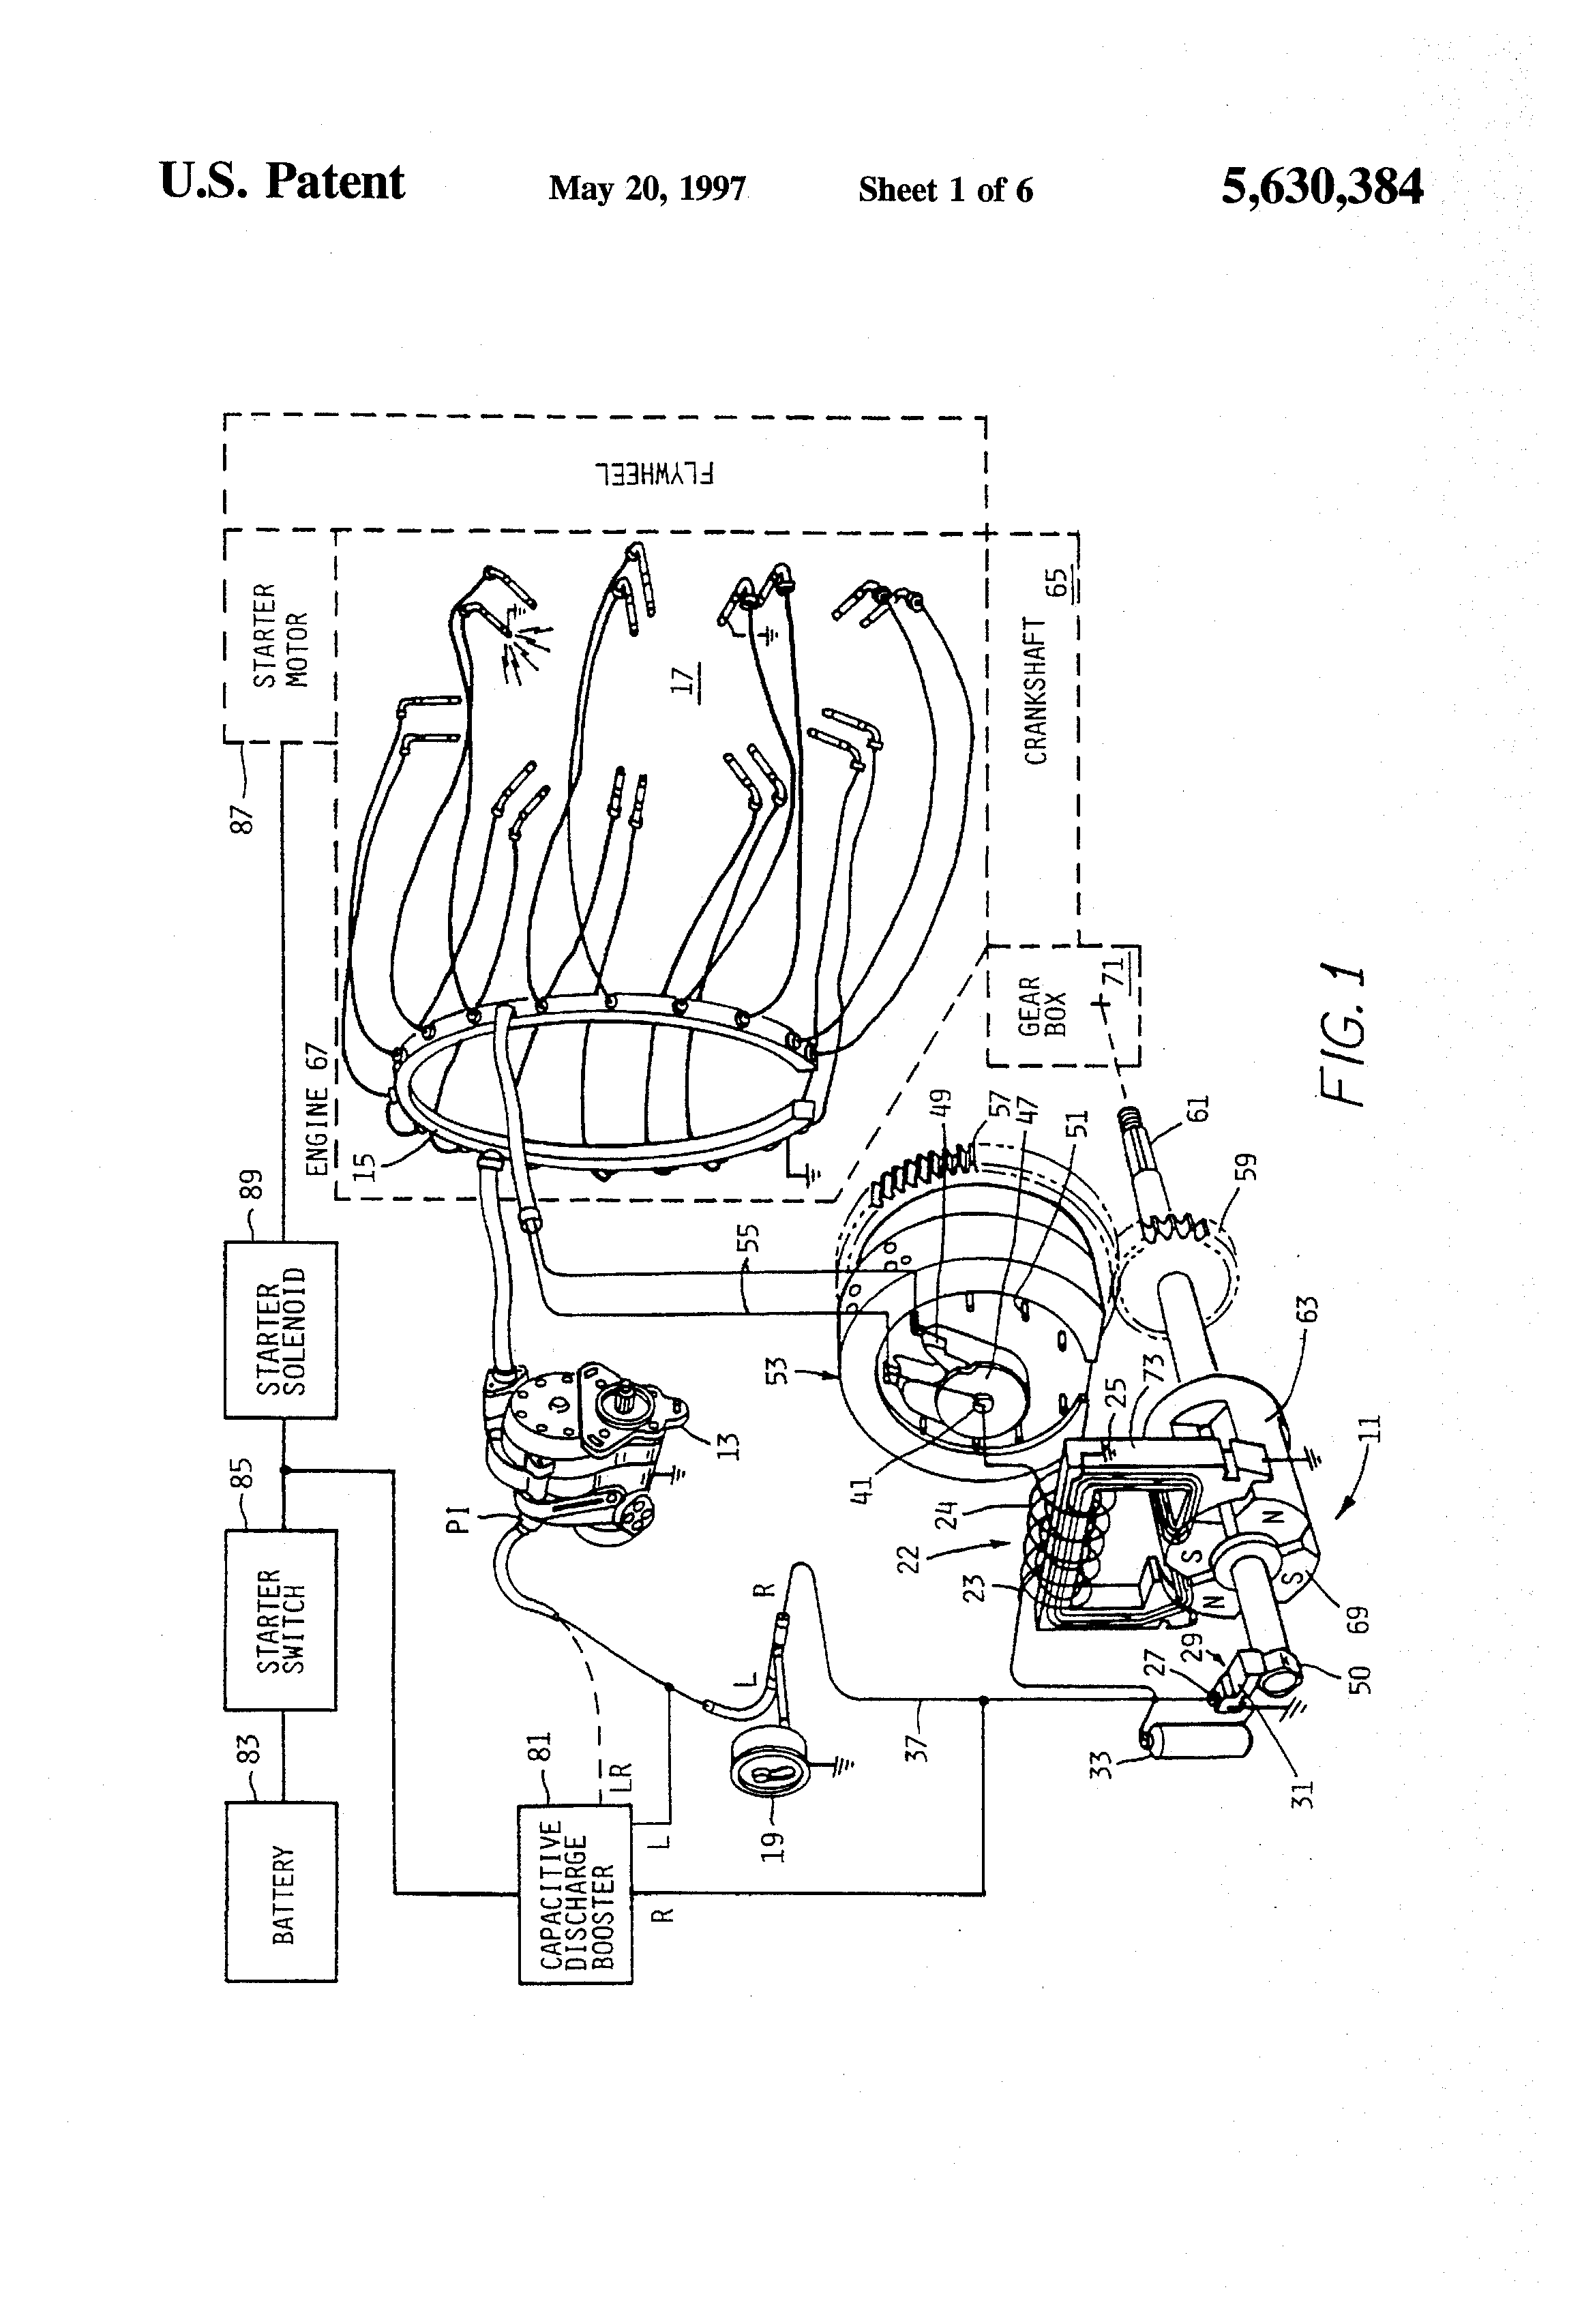 US5630384 1 patent us5630384 magneto based ignition system for reciprocating aircraft ignition switch wiring diagram at bayanpartner.co